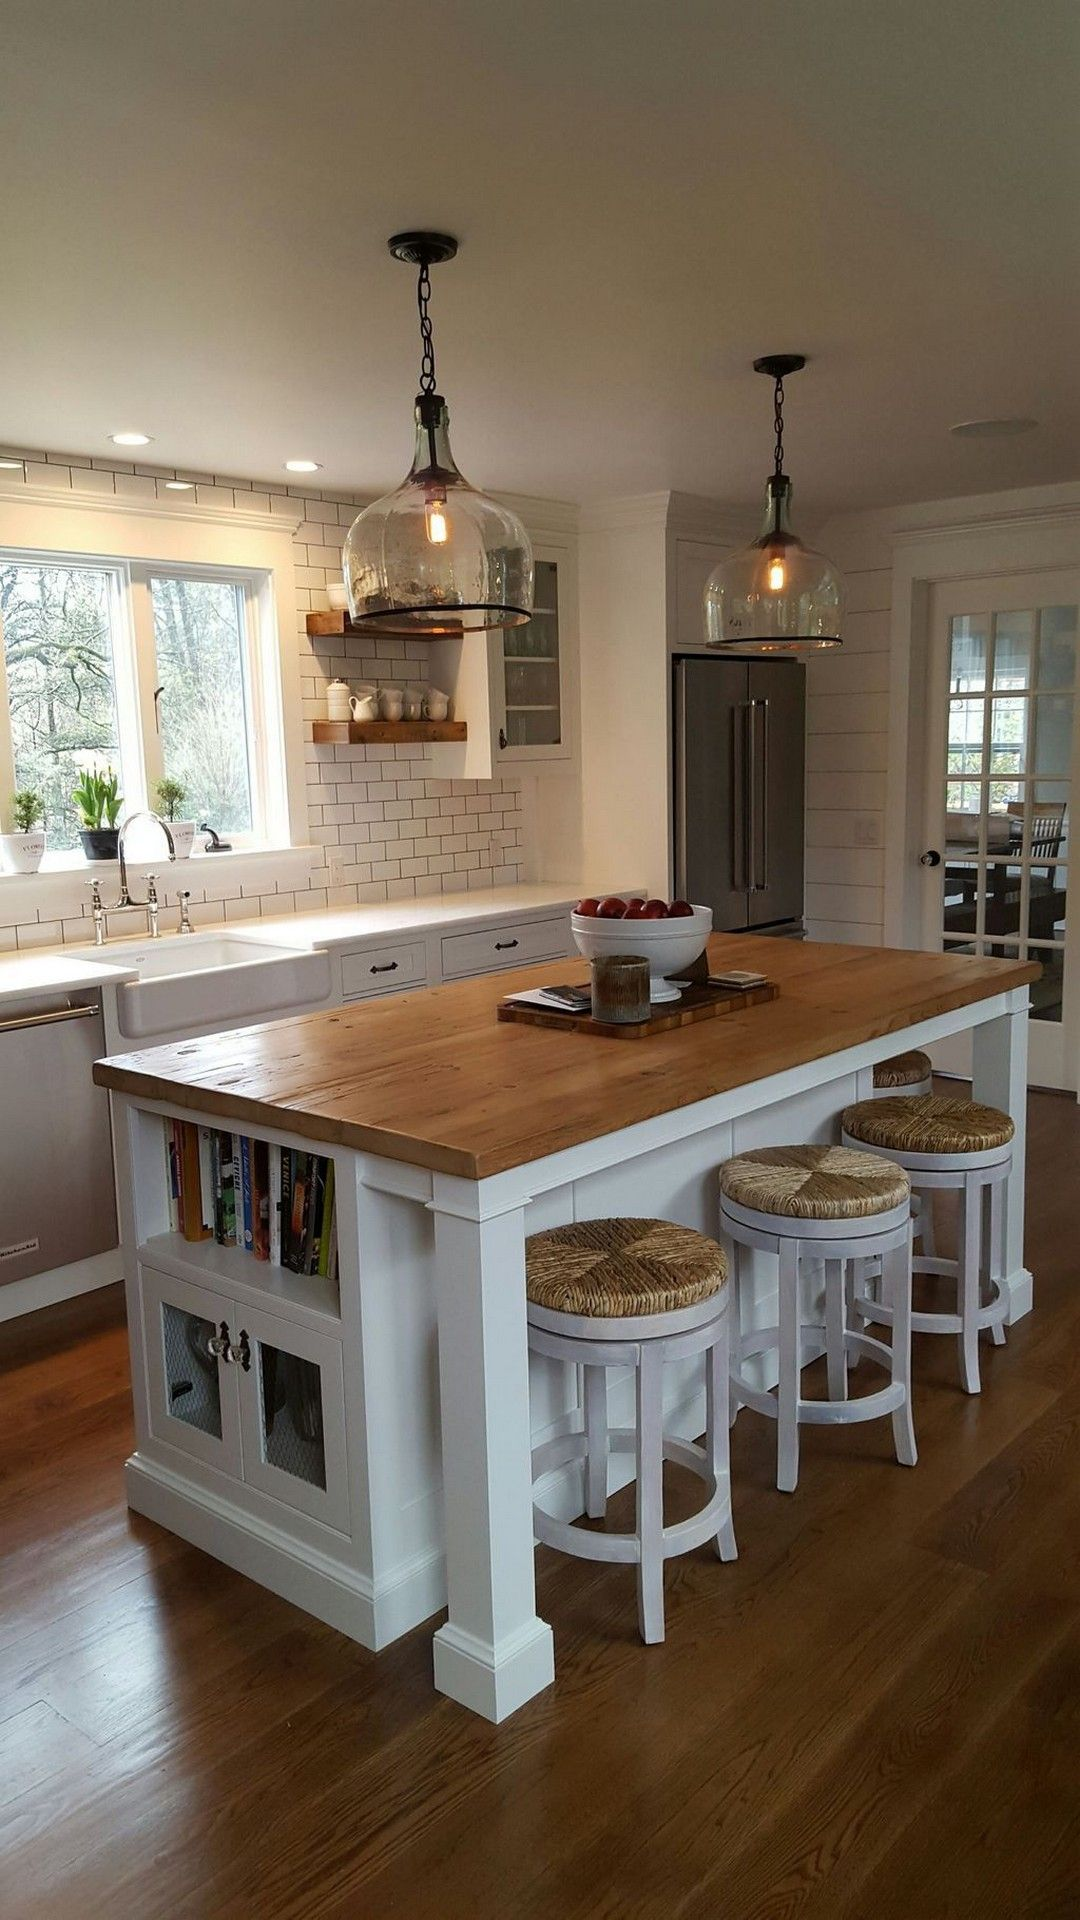 86 Farmhouse Kitchen Island Lighting